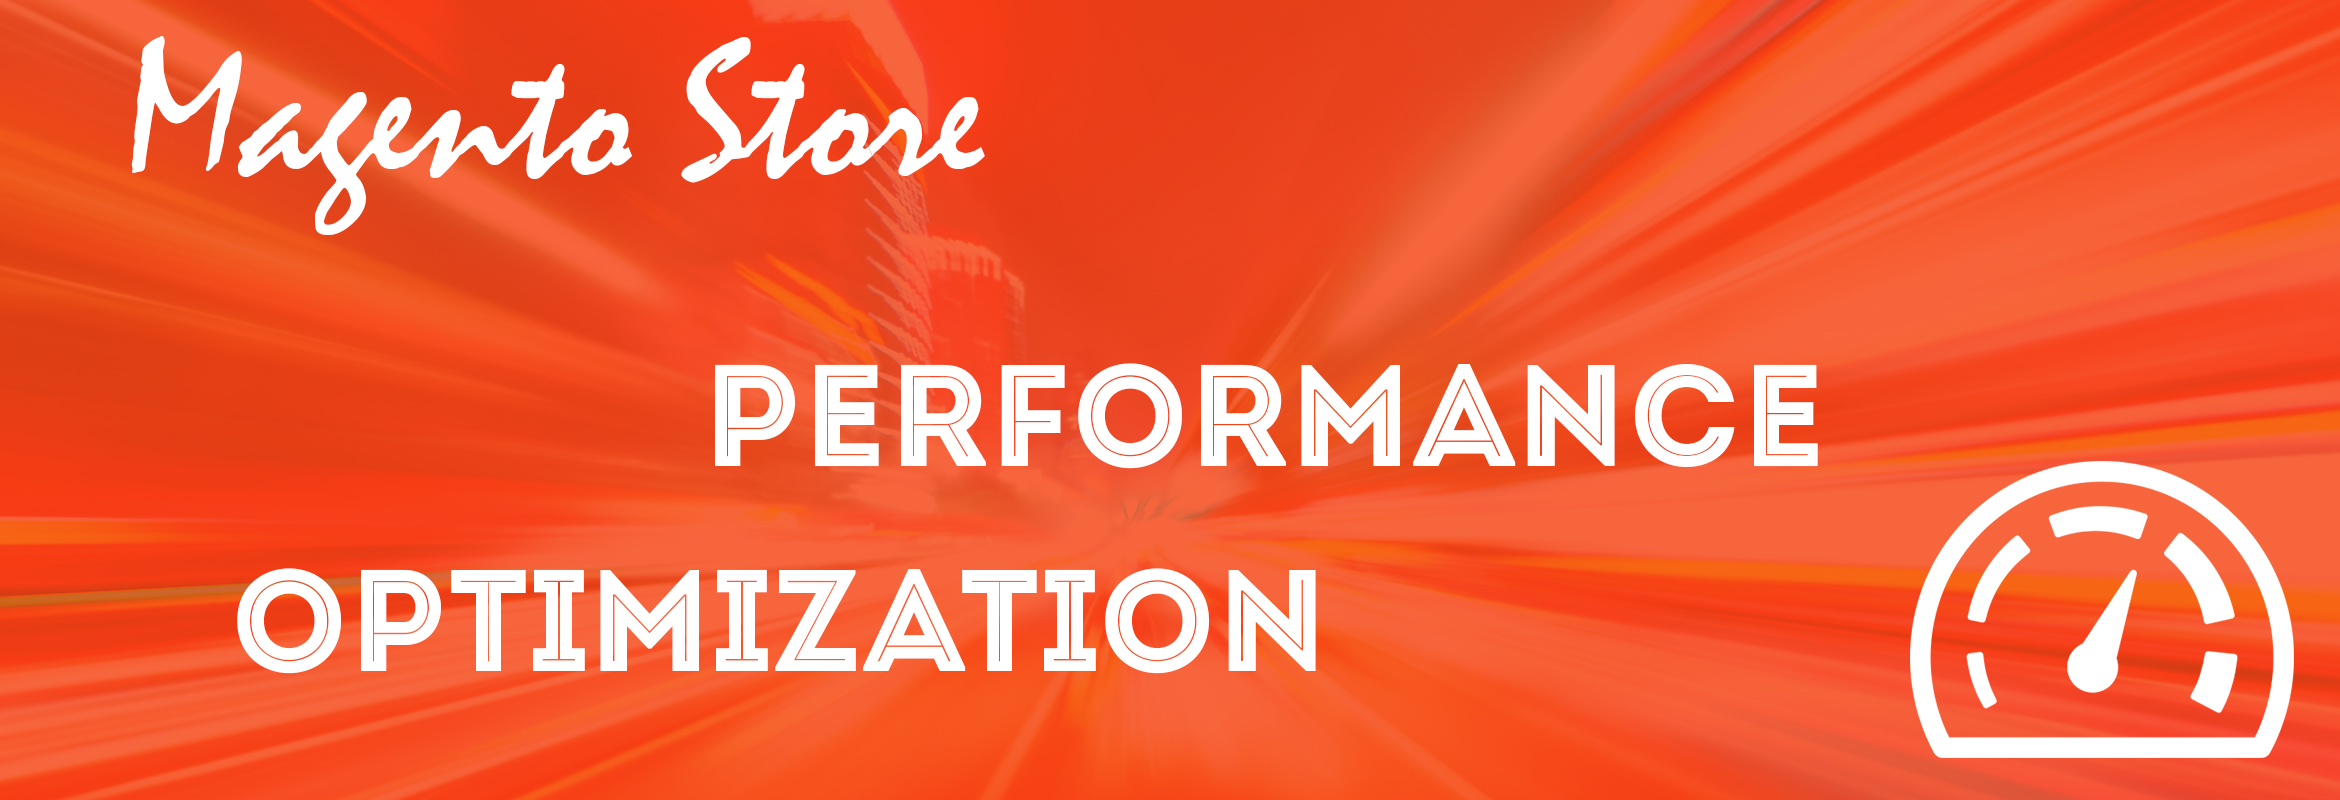 Magento Store Performance Optimization: Full Page Cache Is A Must